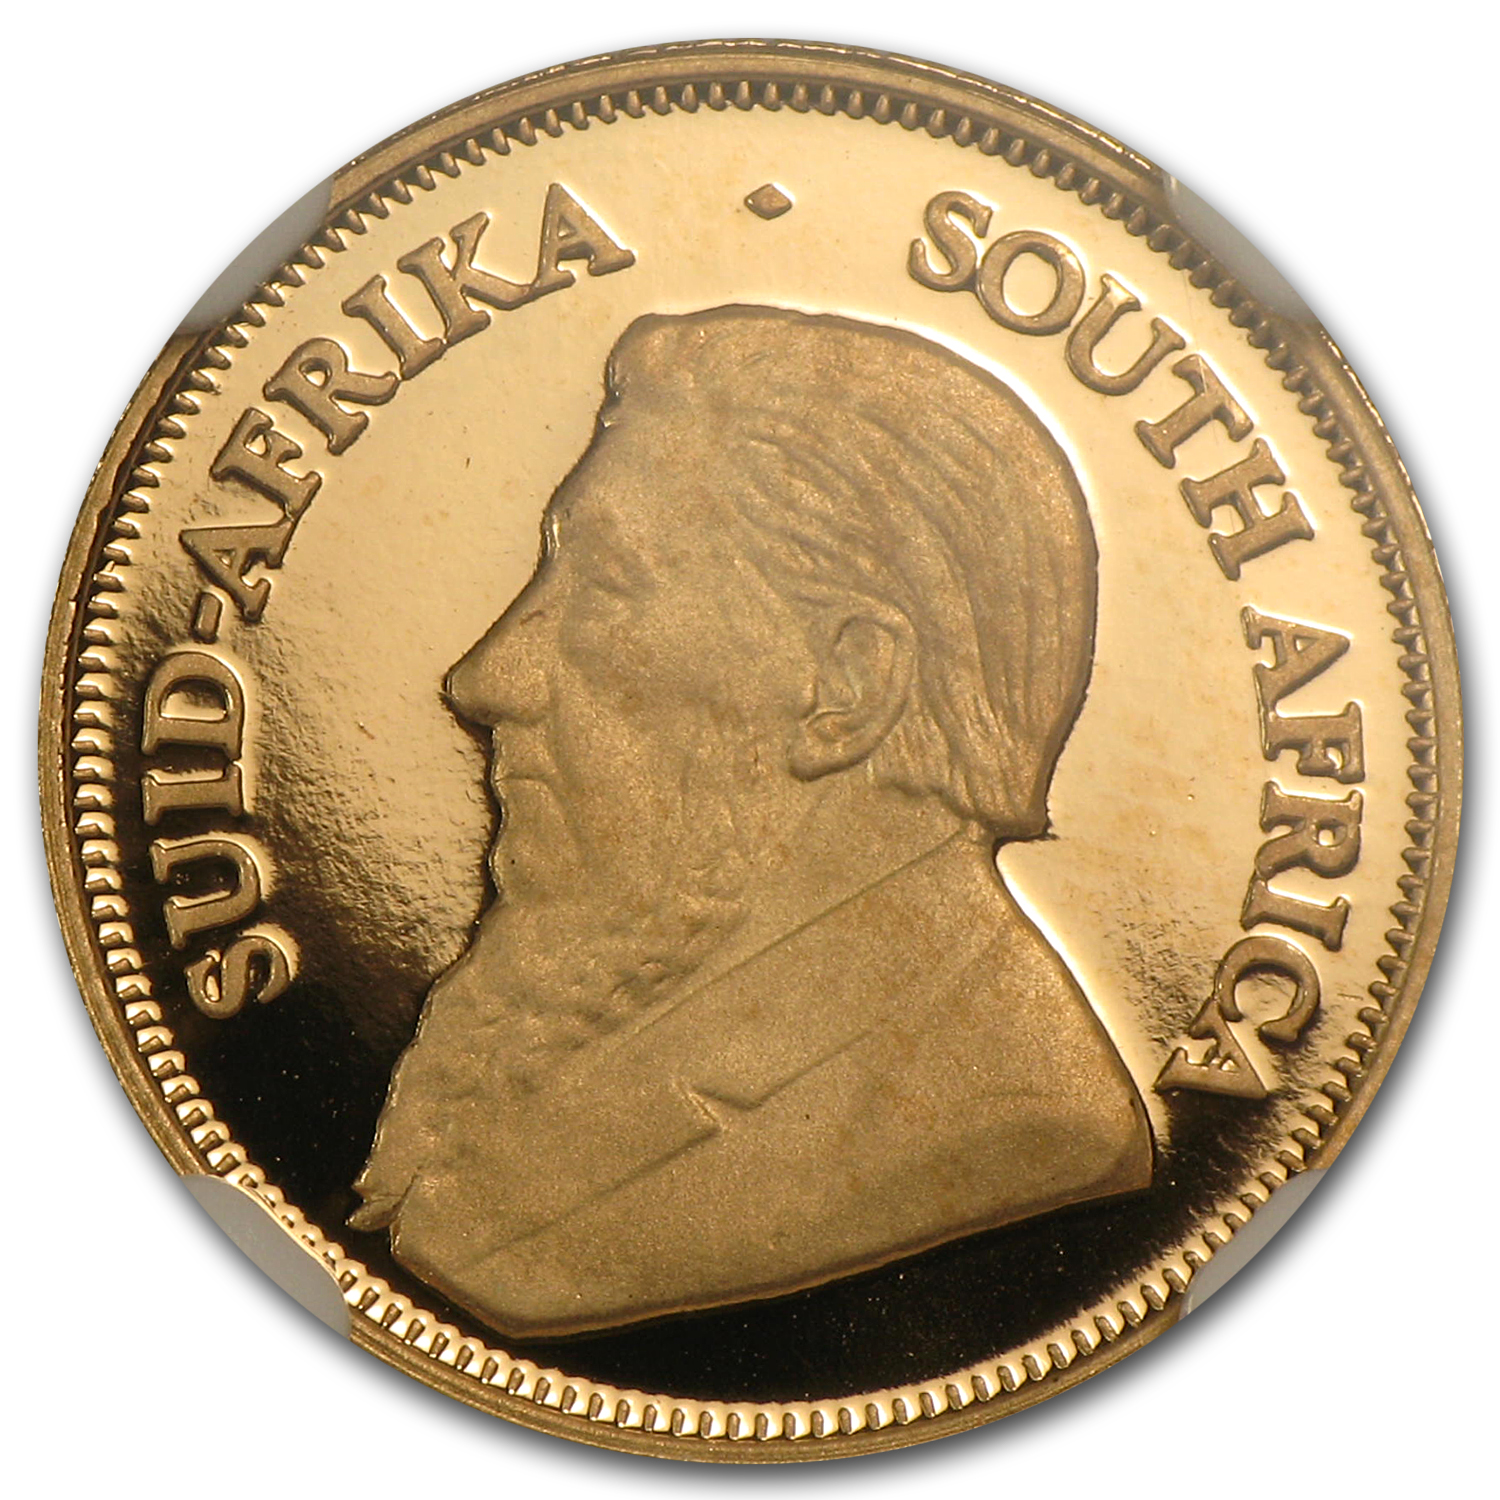 2002 South Africa 1/10 oz Gold Krugerrand PF-69 NGC